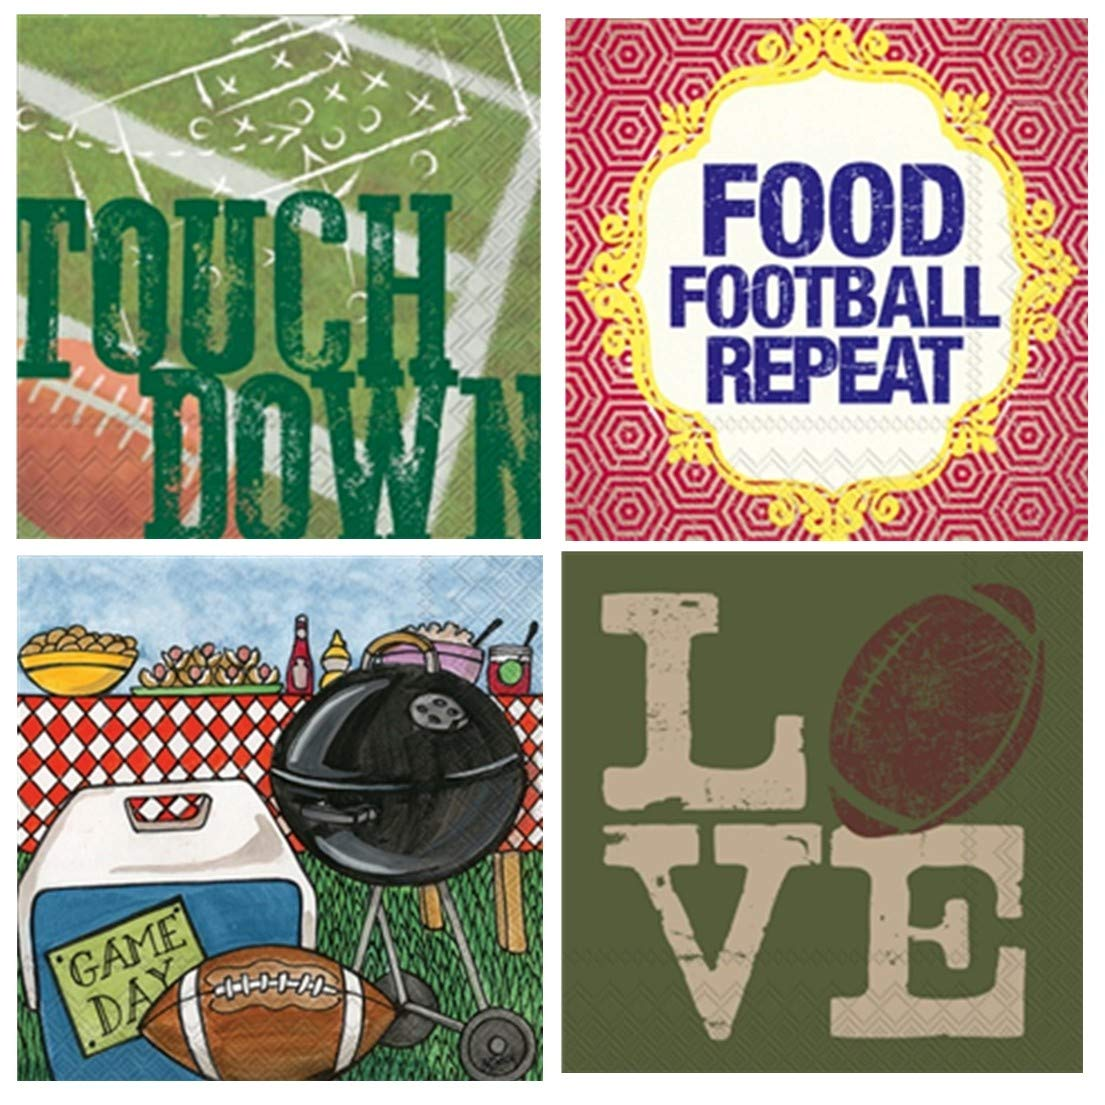 Boston International 20 Count 3-Ply Paper Cocktail Napkins, Set of 4 Football Themes by Boston International